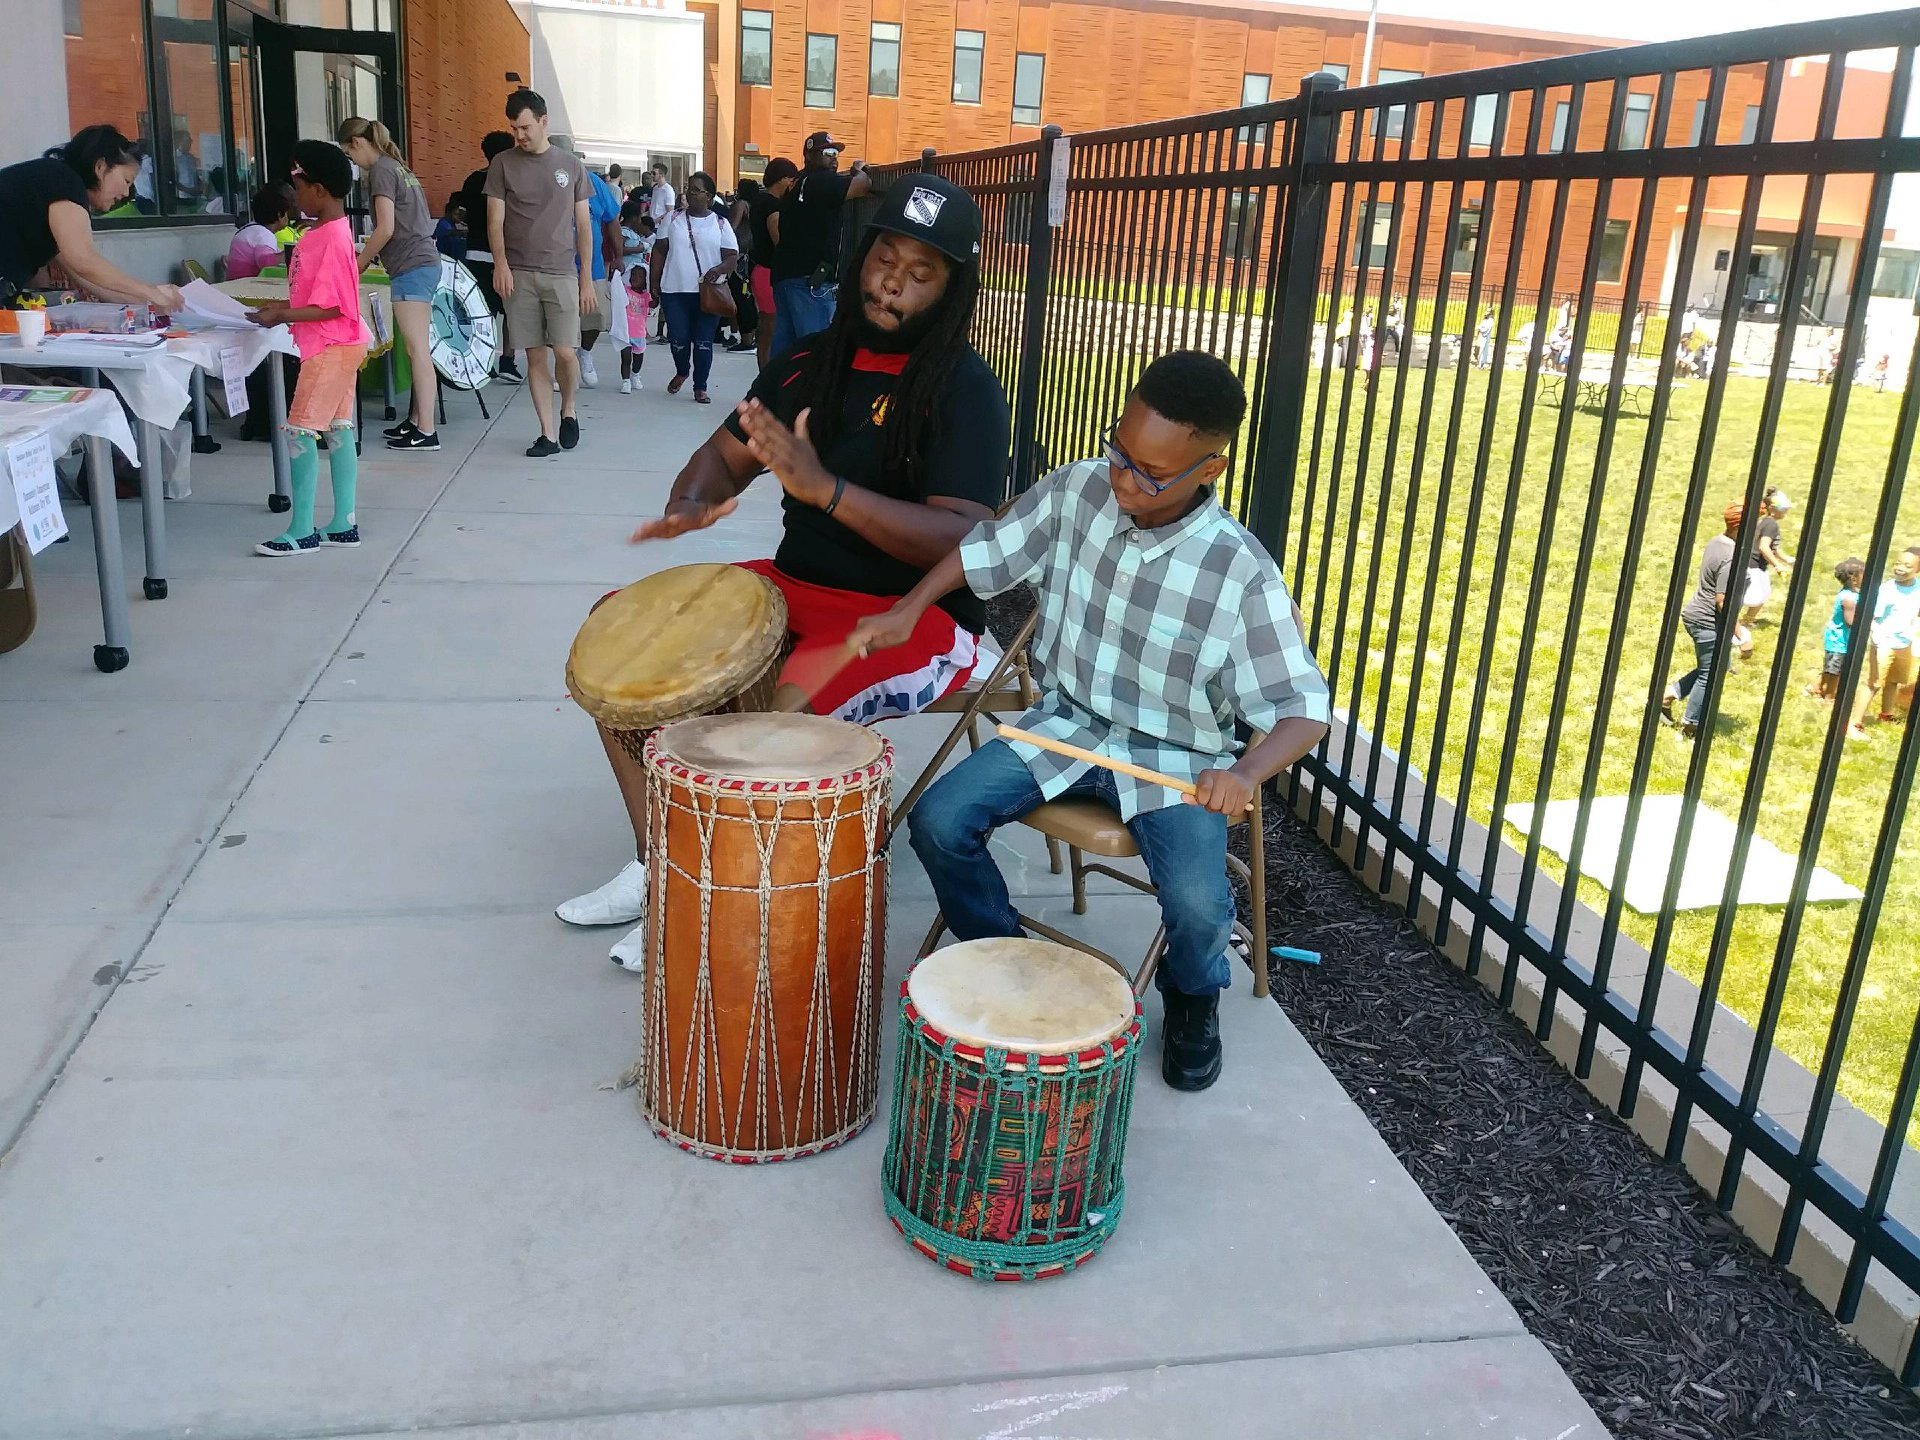 Two people playing drums